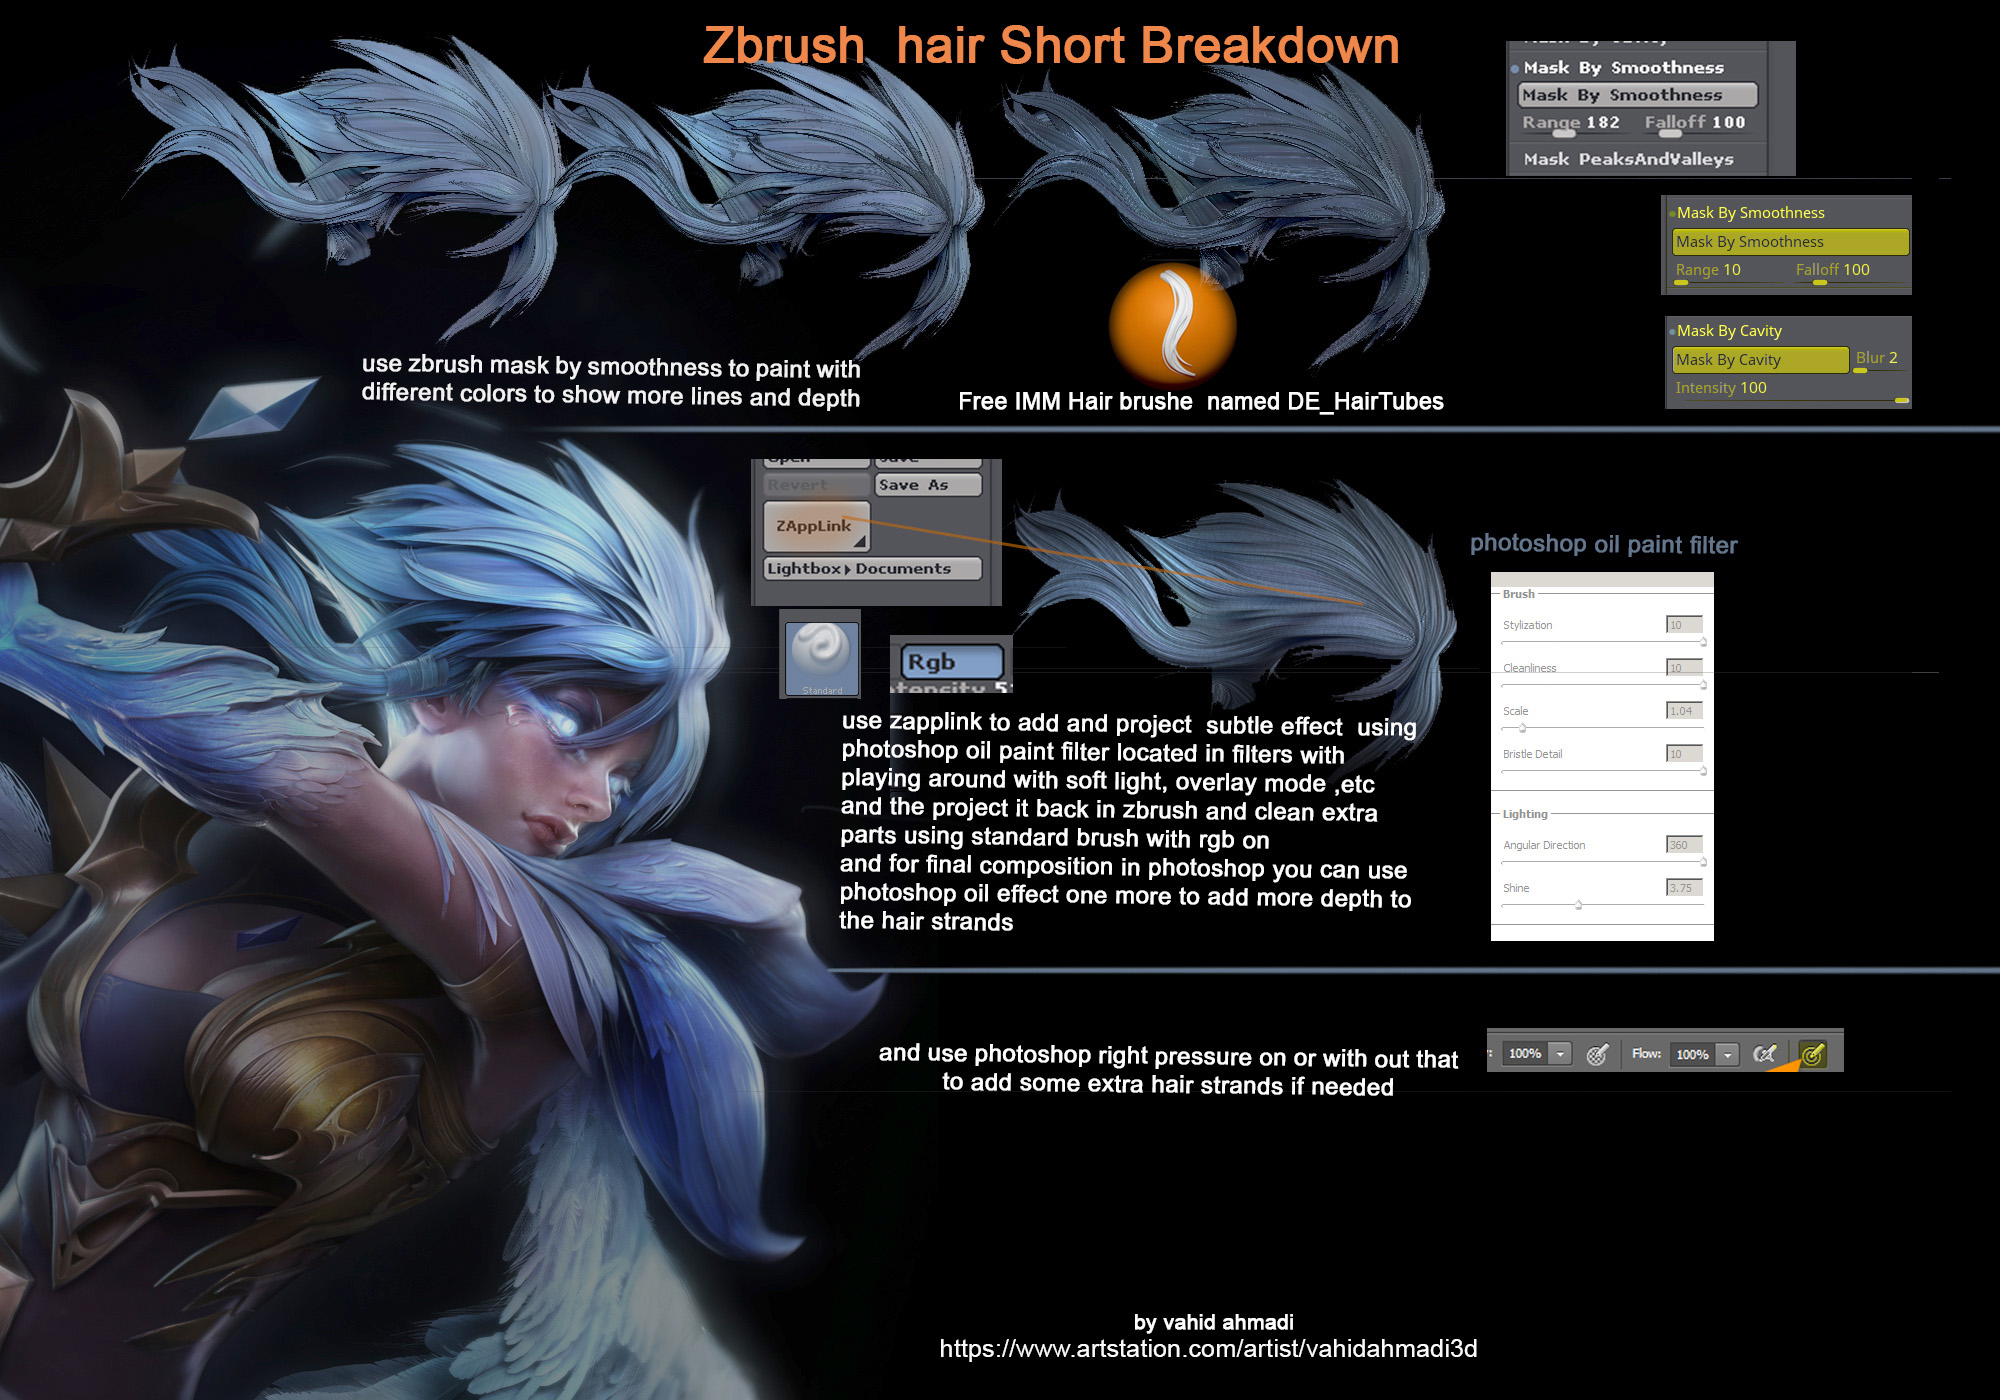 4a hair tutorial by vahid ahmadi zbrush work.jpg